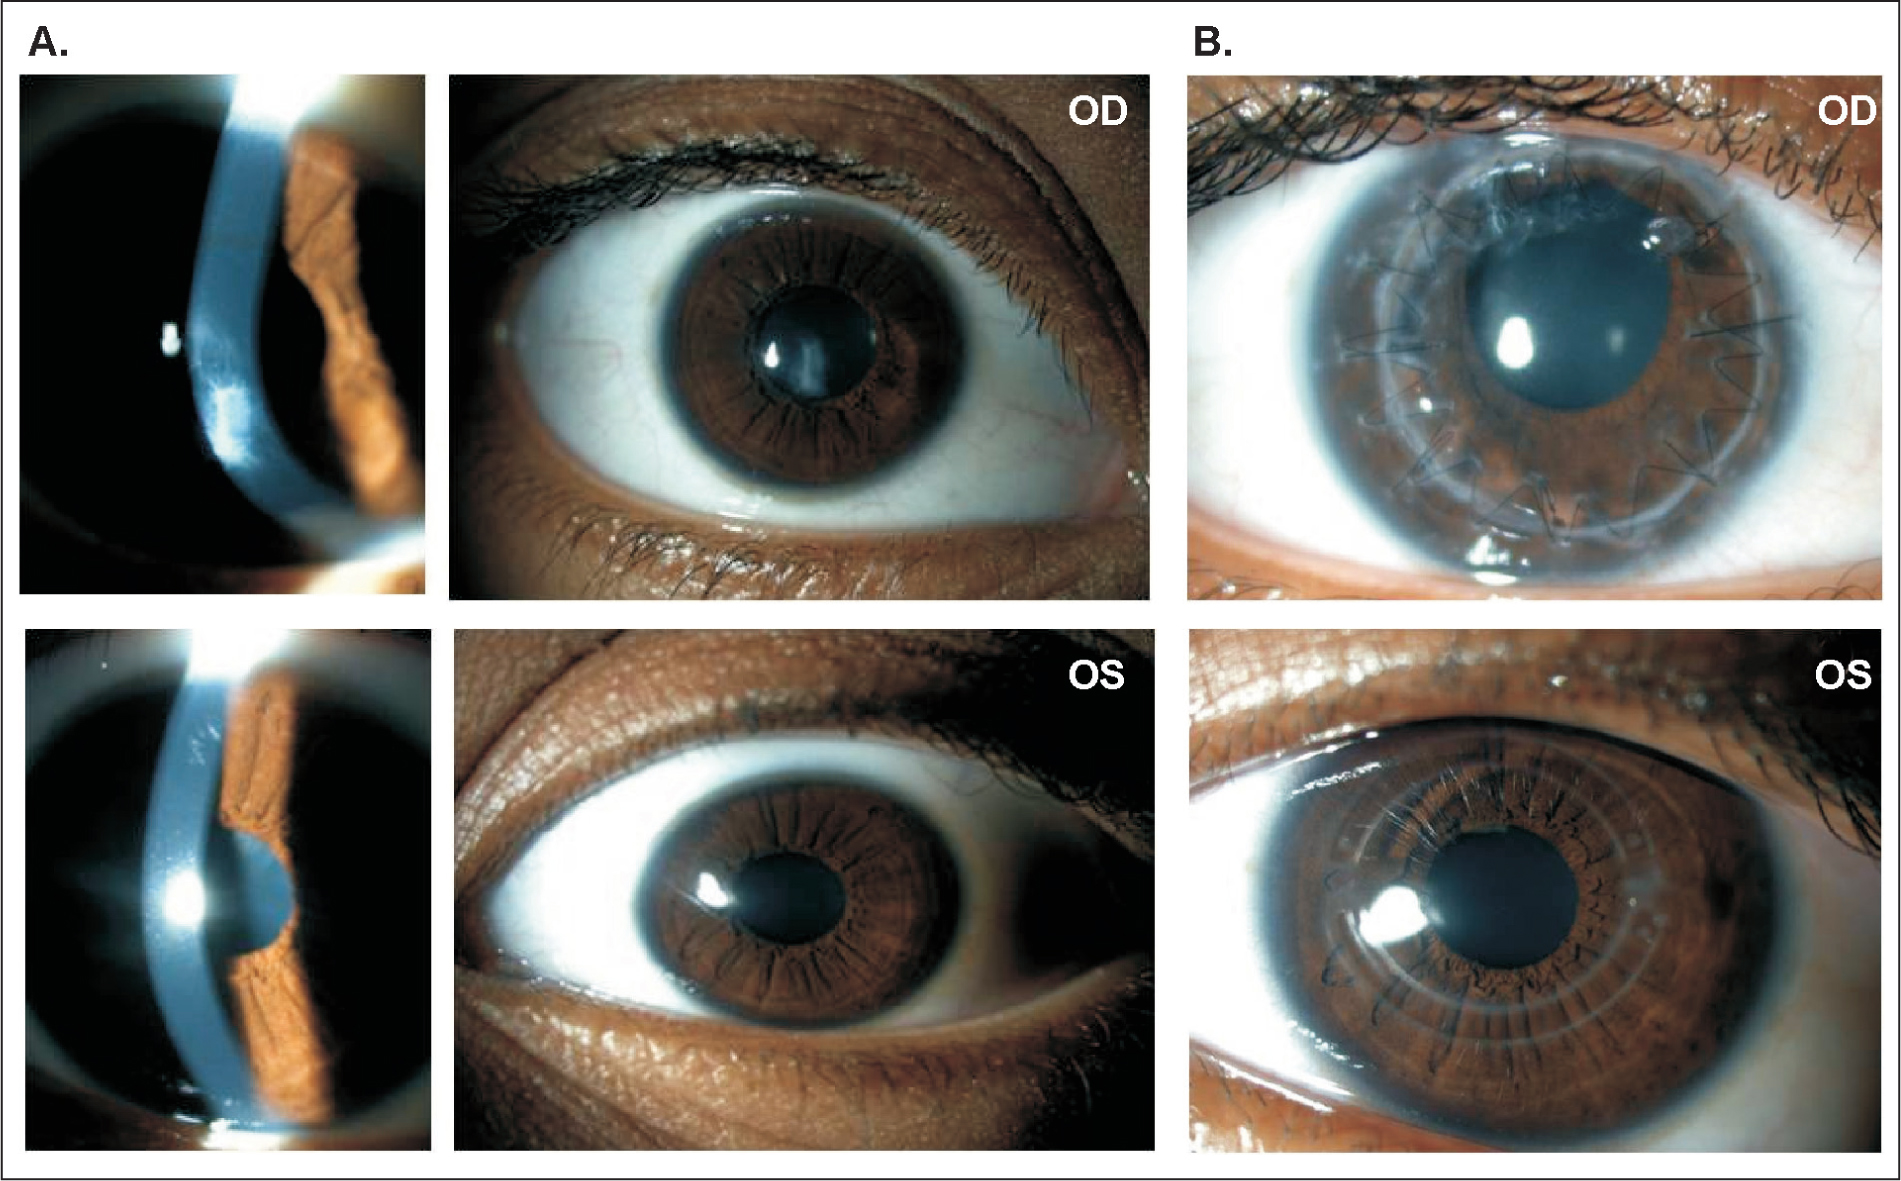 Biomicroscopy of the (A) right eye (OD) and left eye (OS) before surgery and (B) after penetranting keratoplasty in the right eye and after surgical implantation of intracorneal ring segments followed by corneal collagen cross-linking in the left eye.